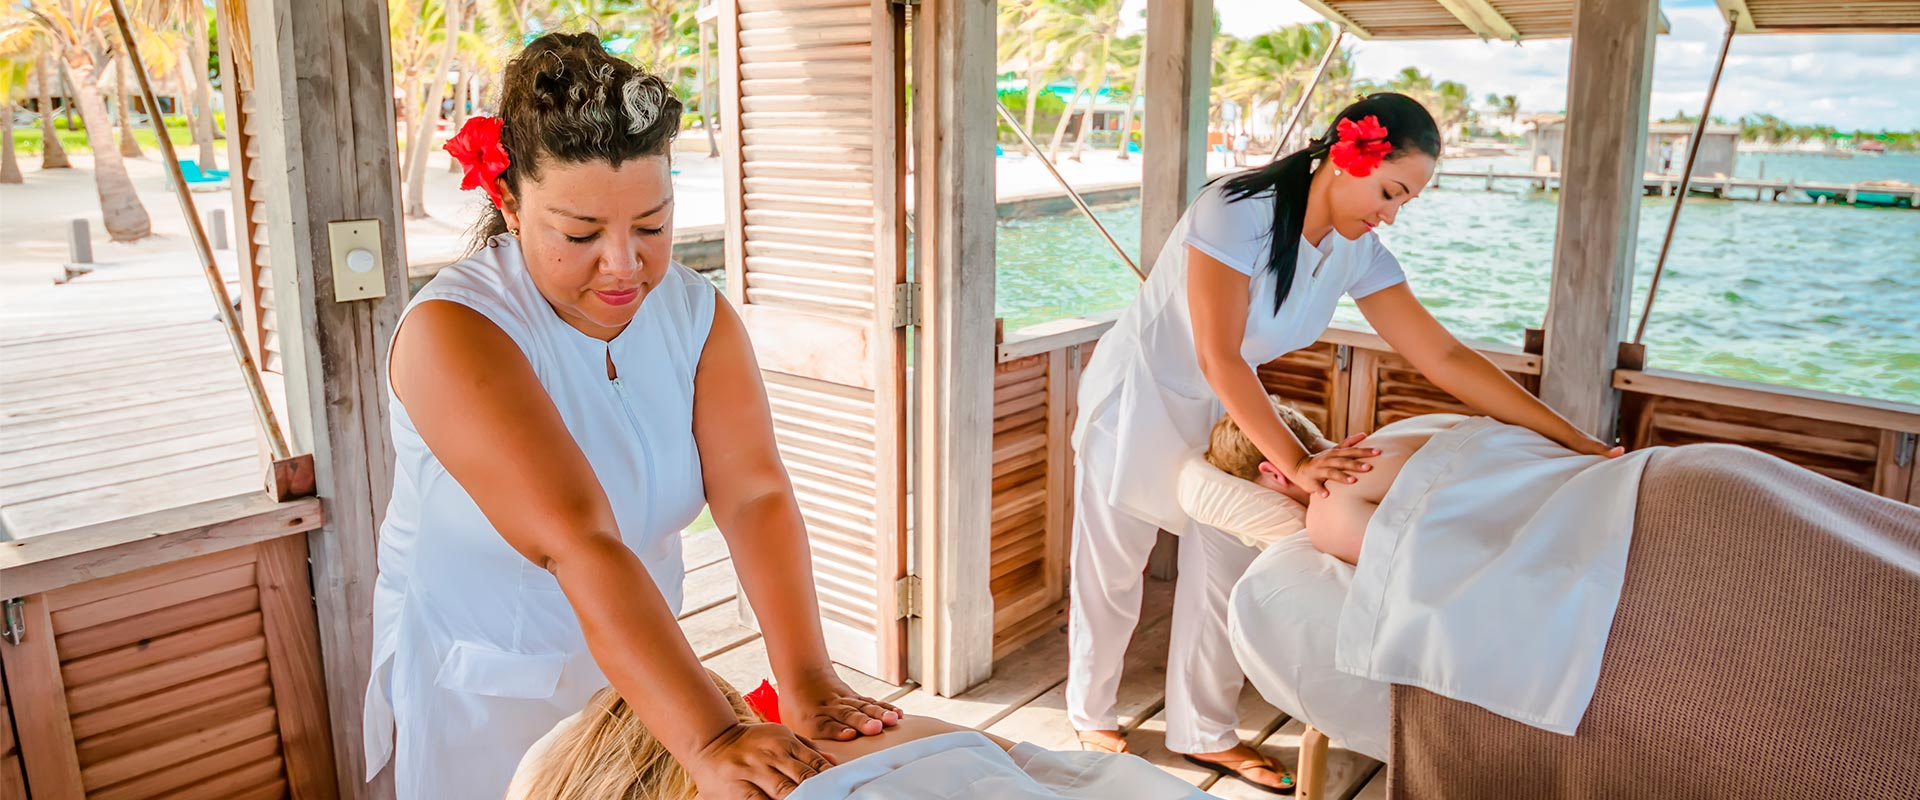 Spa treatment at Victoria House